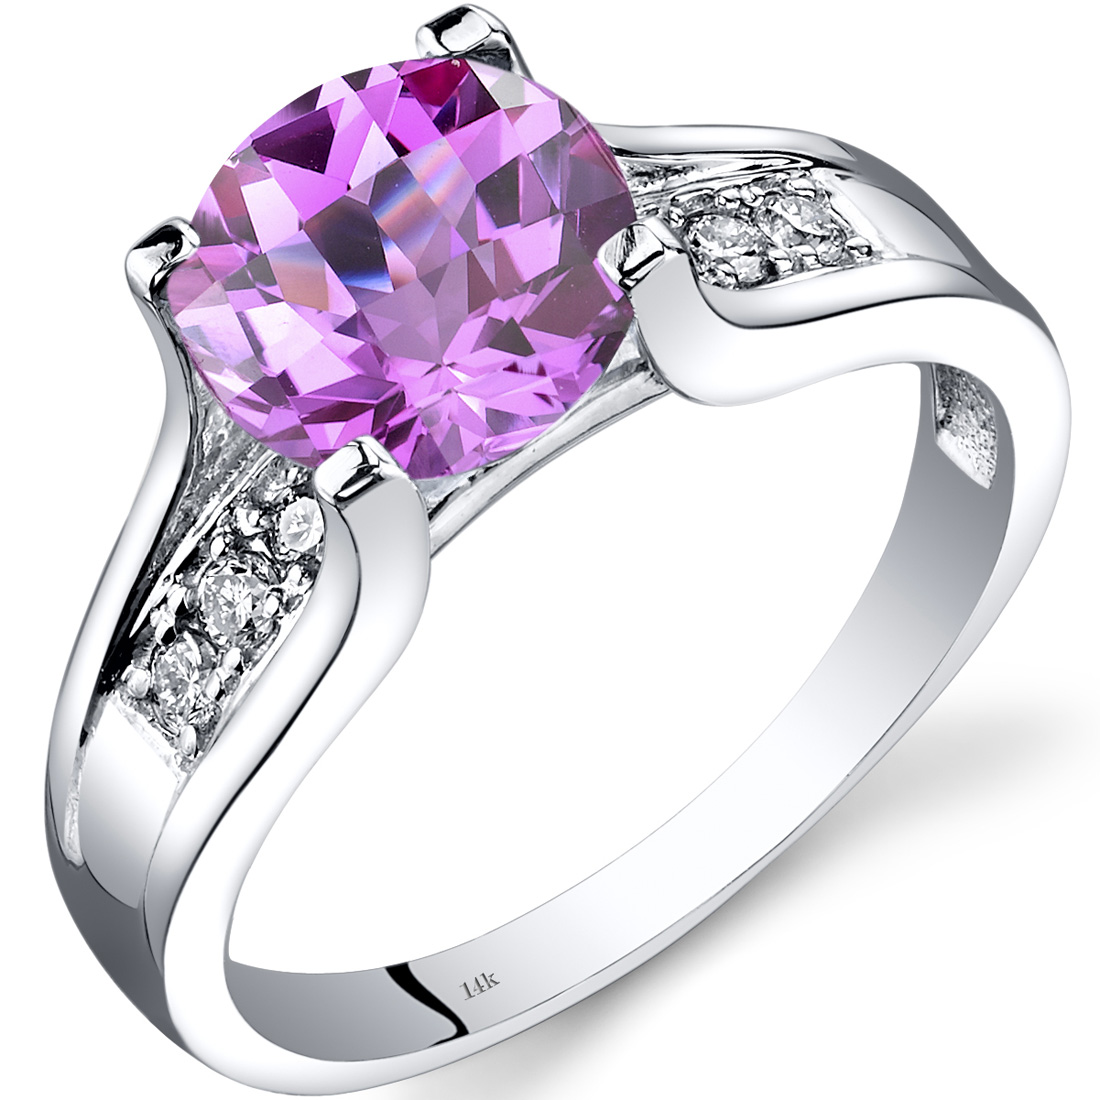 Peora 2.5 Carat T.G.W. Round-Cut Created Pink Sapphire and Diamond Accent 14kt White Gold Ring Size 7 by